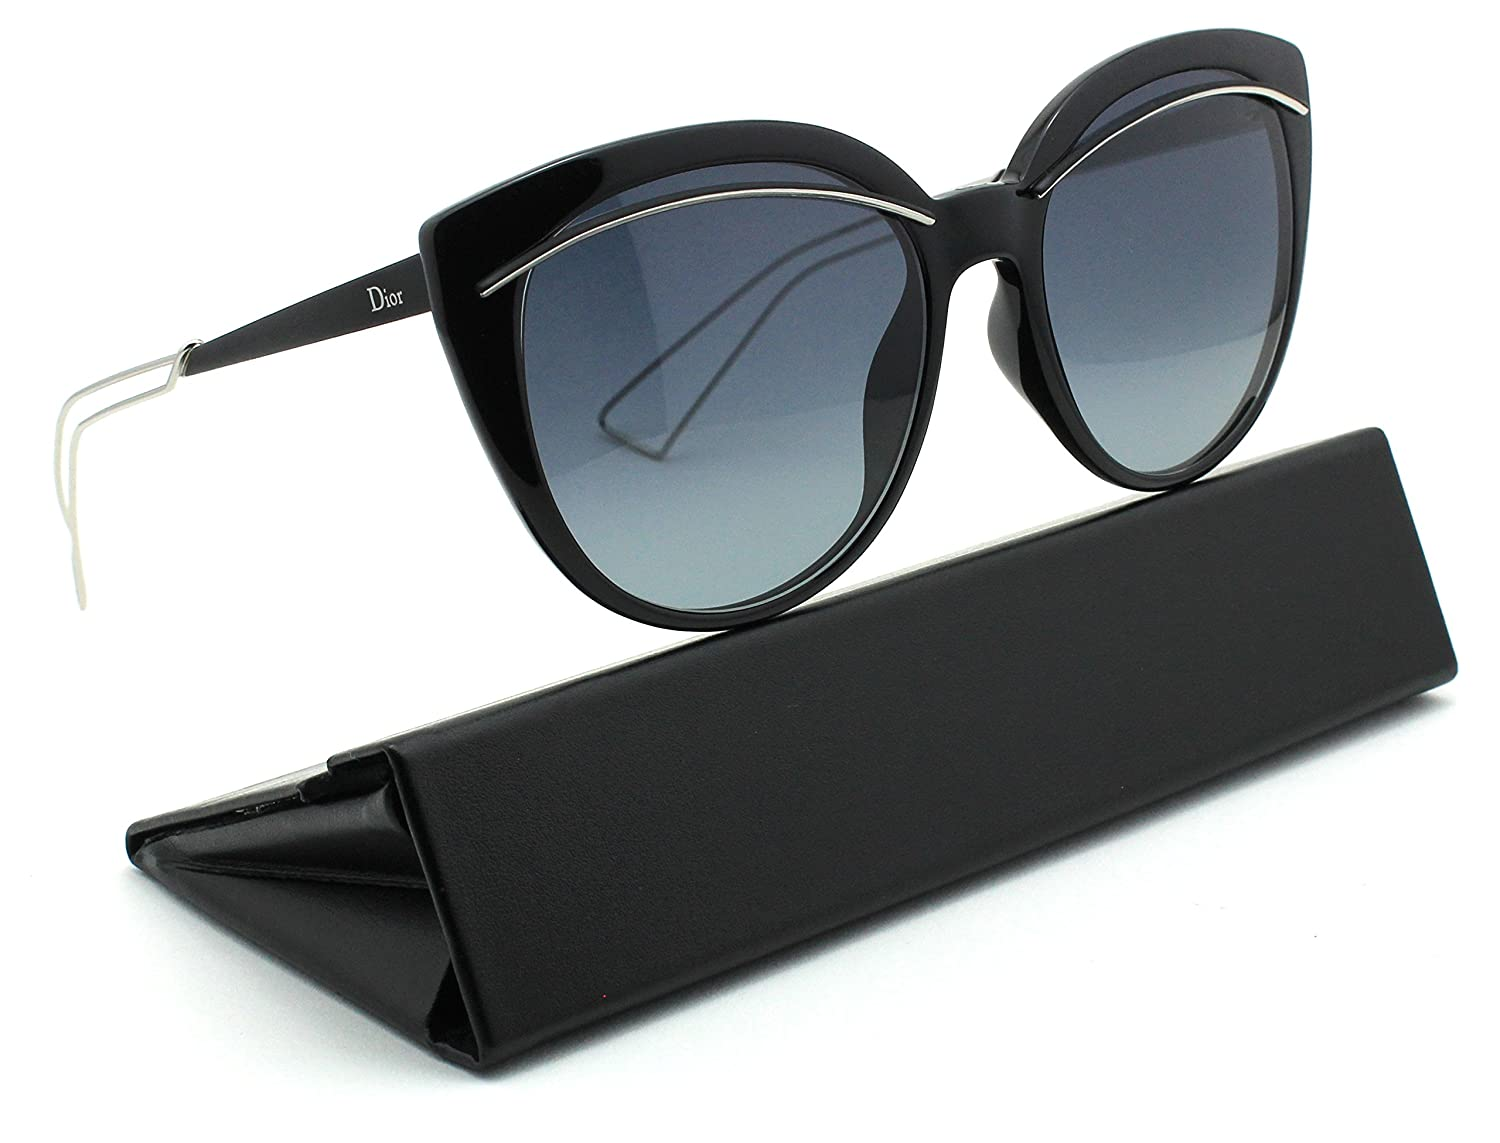 471b19c0bd444 Amazon.com  Christian Dior LINER Women Round Gradient Sunglasses (Black  Palladium Frame